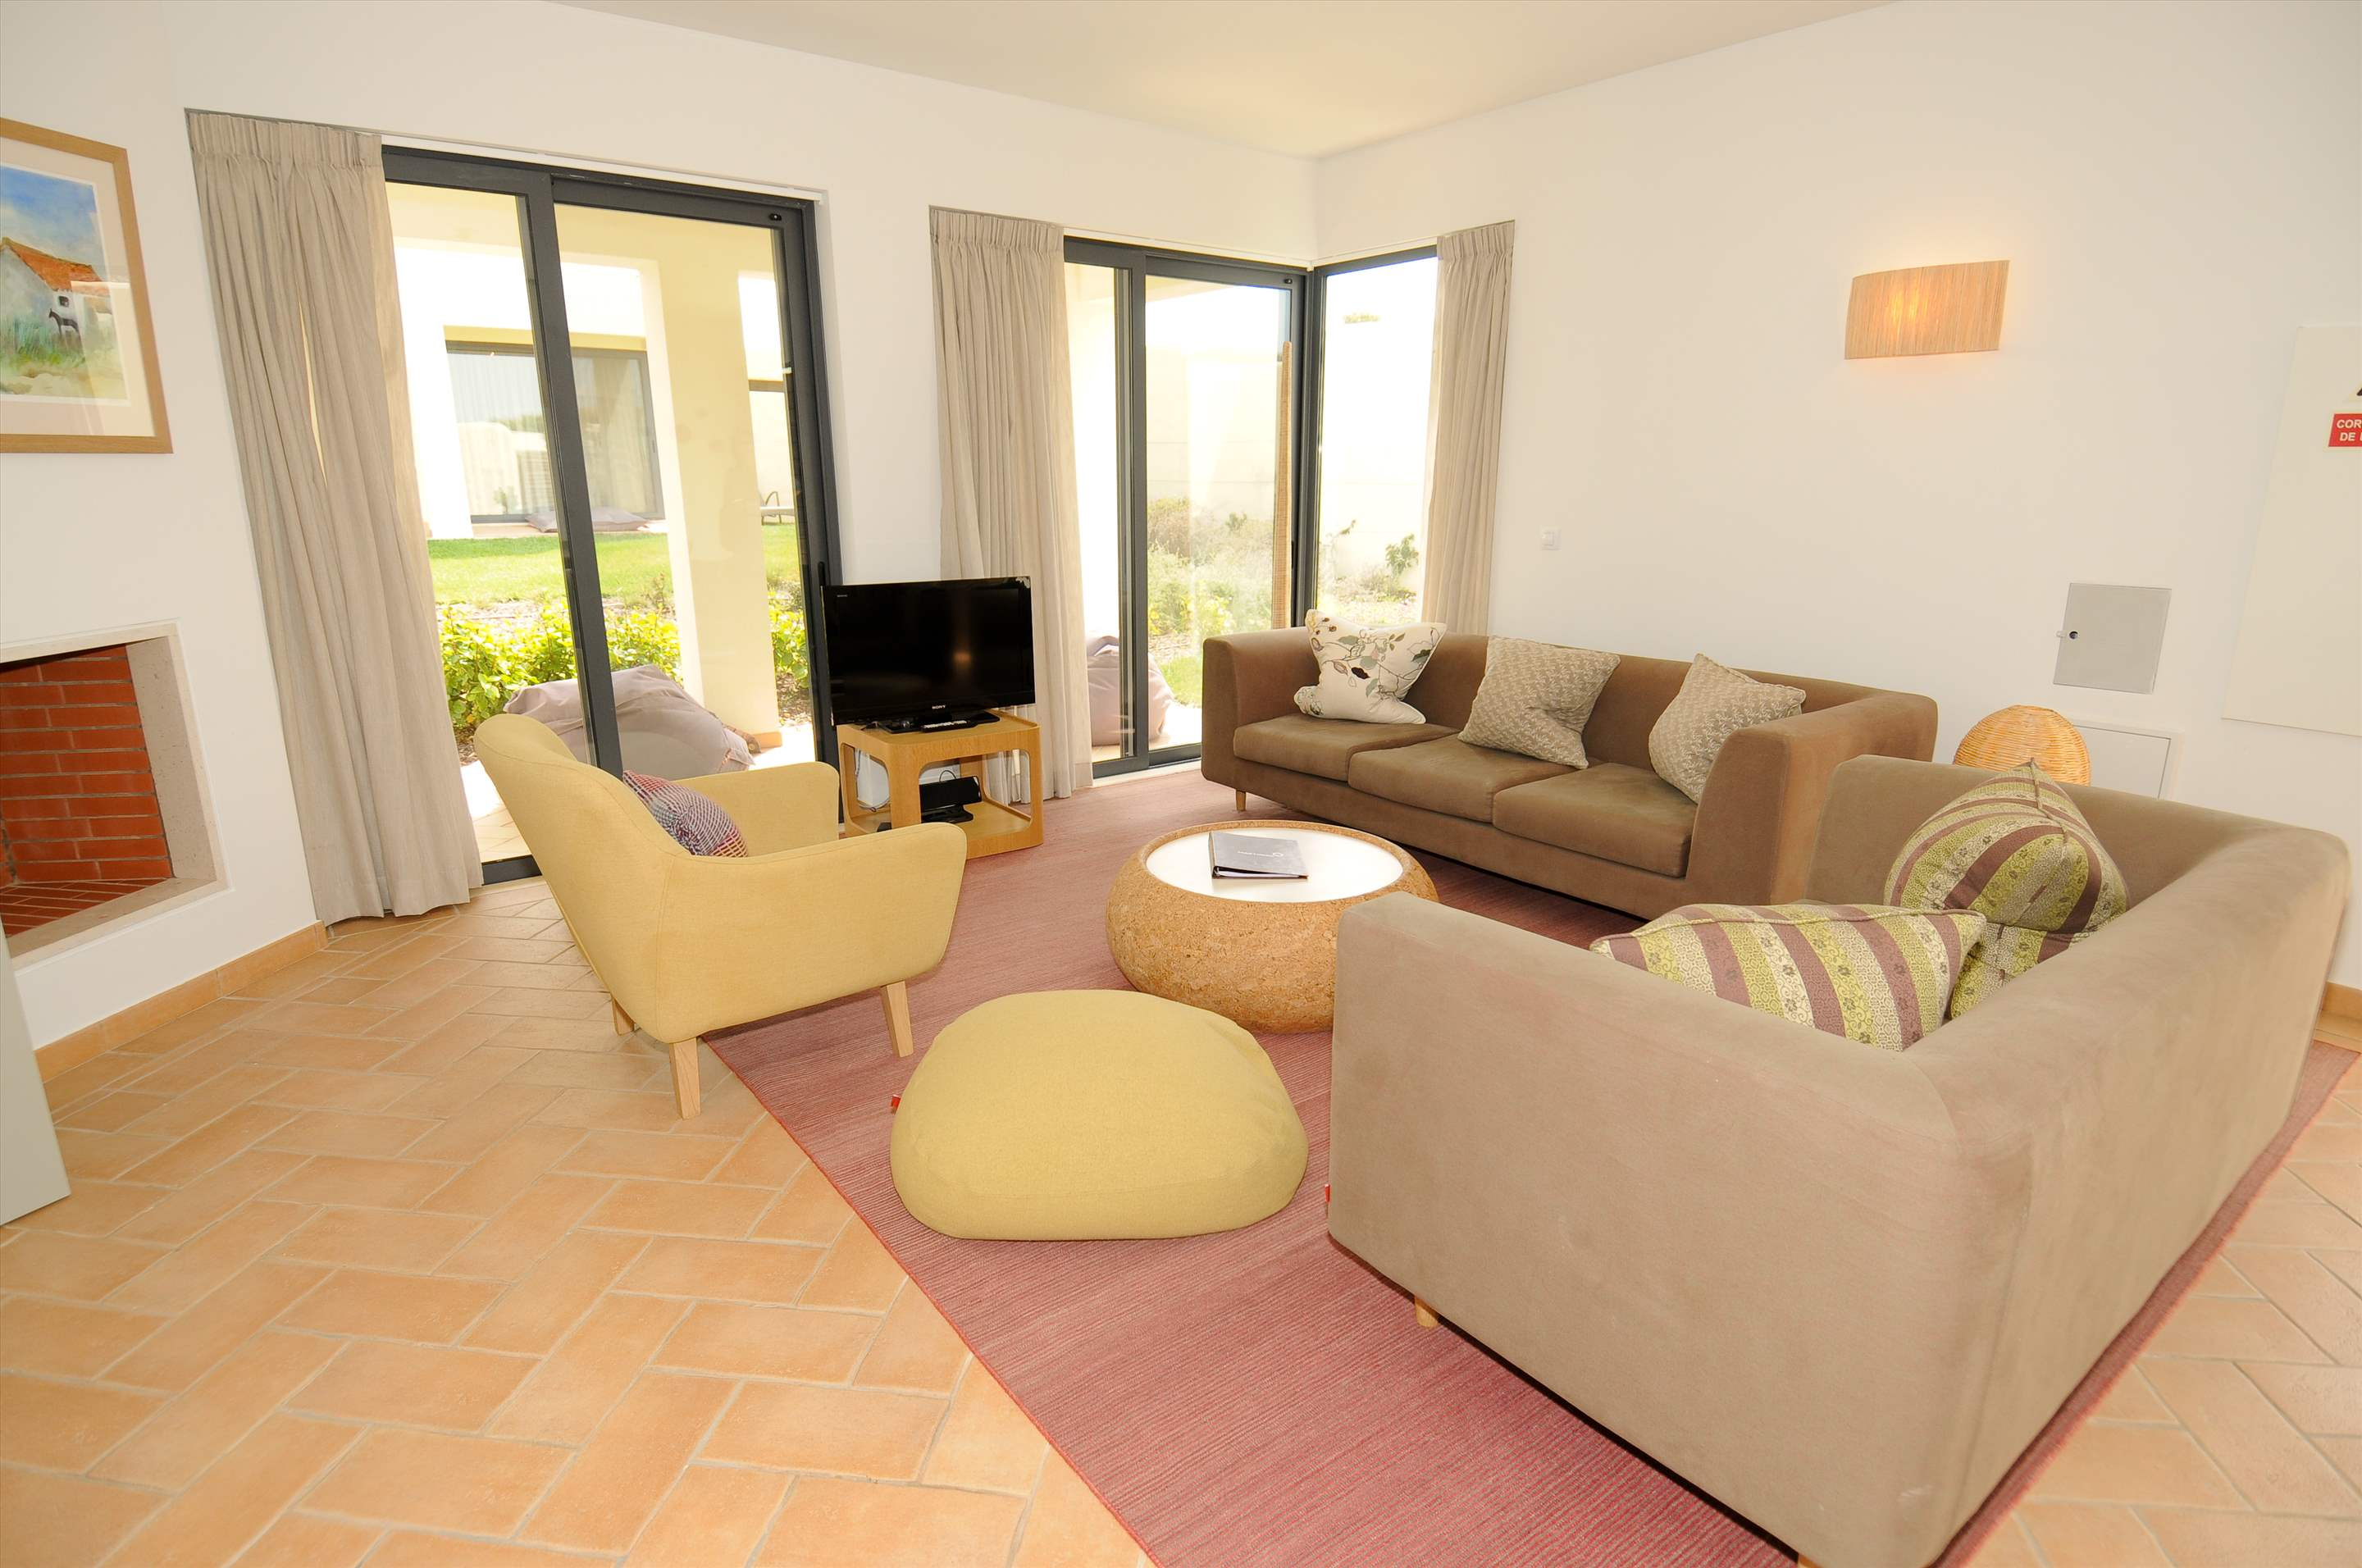 Martinhal Village Garden House, Grand Deluxe Two Bedroom, 2 bedroom villa in Martinhal Sagres, Algarve Photo #1